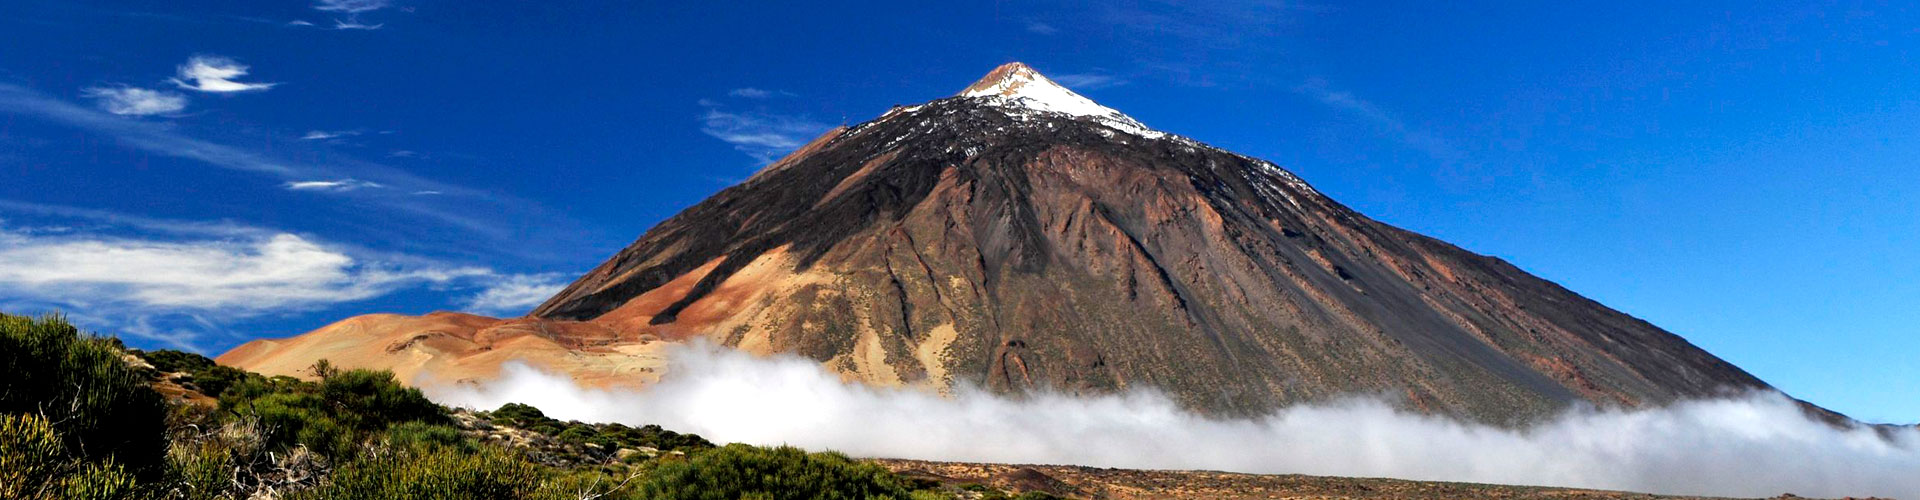 Teide, Masca, Garachico and Icod Tour